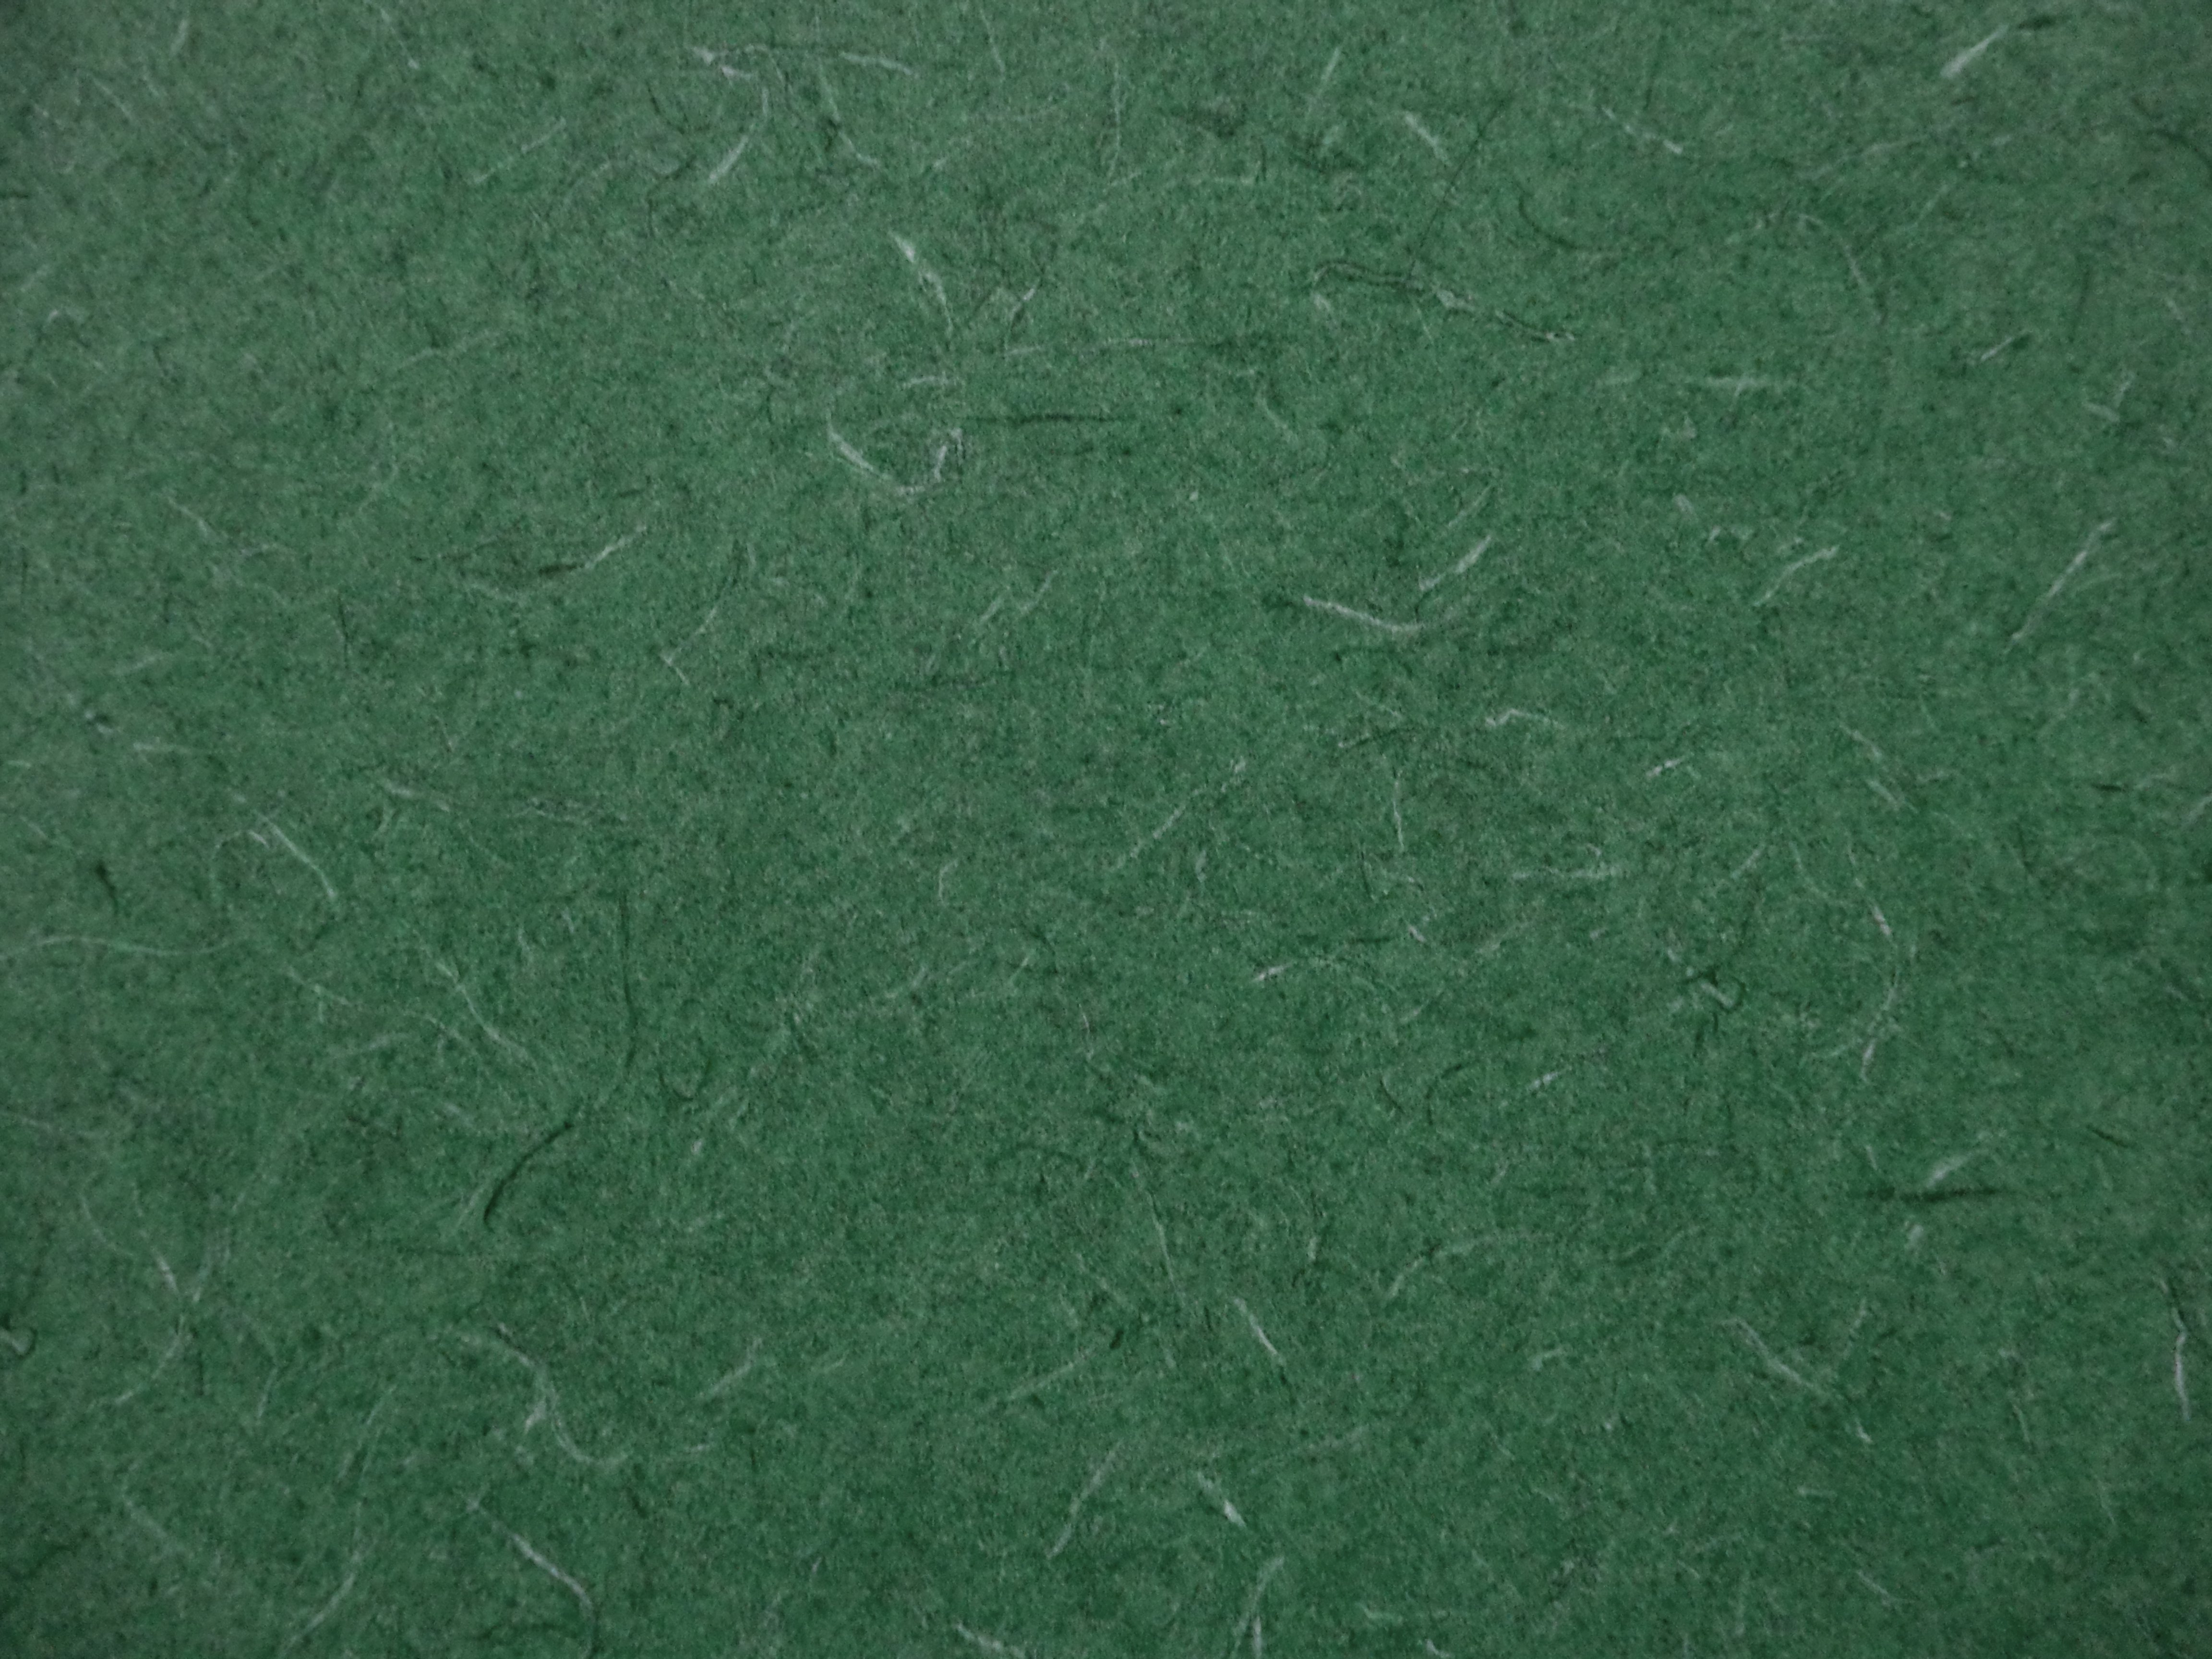 Green Abstract Pattern Laminate Countertop Texture